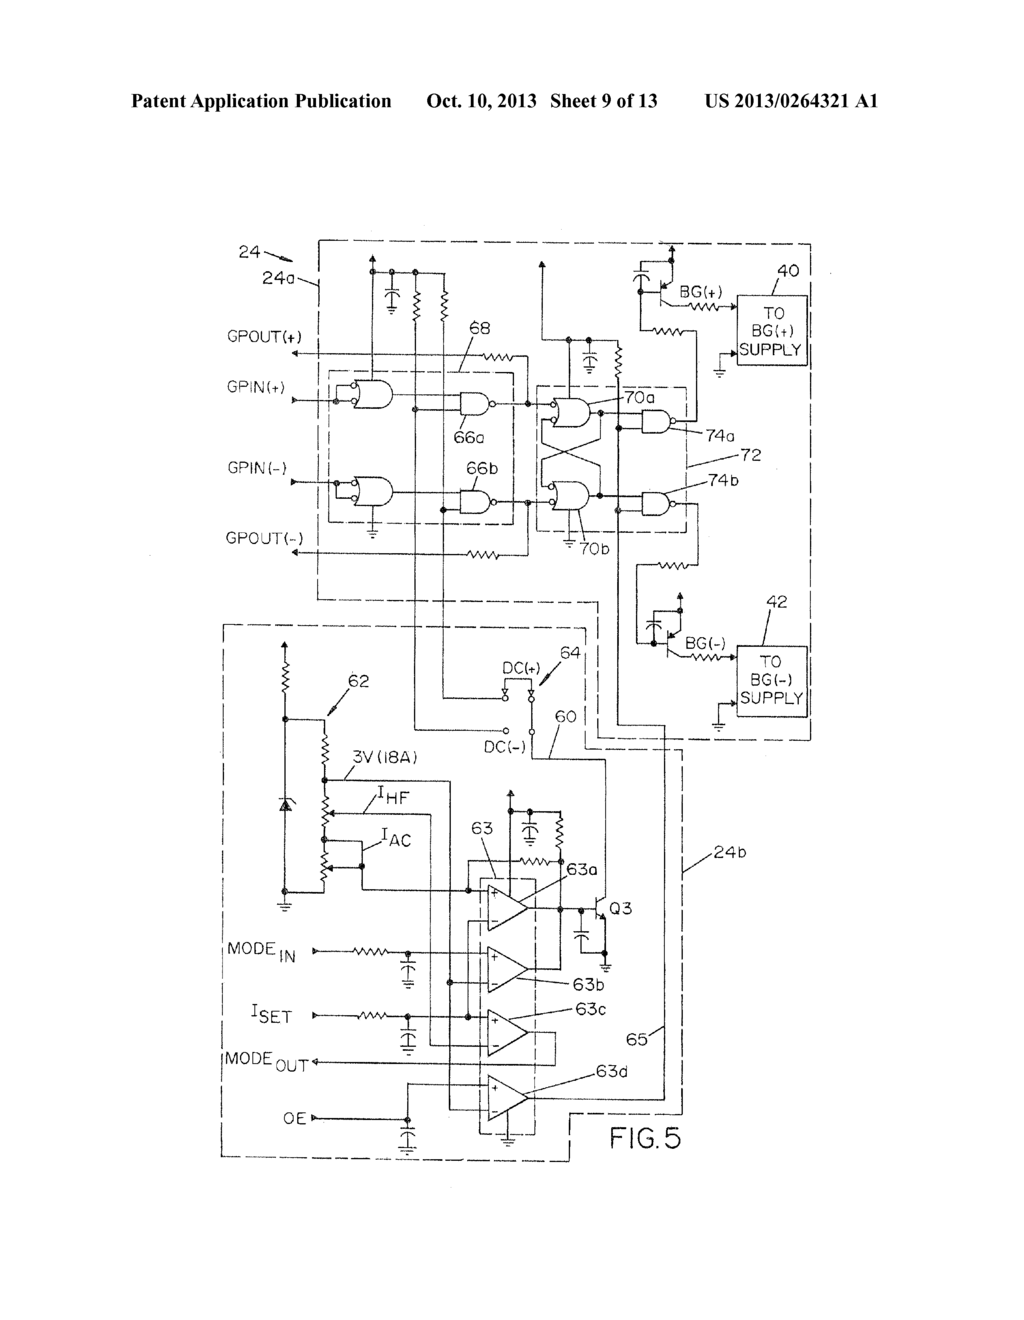 a wiring diagram for the microwave transformer